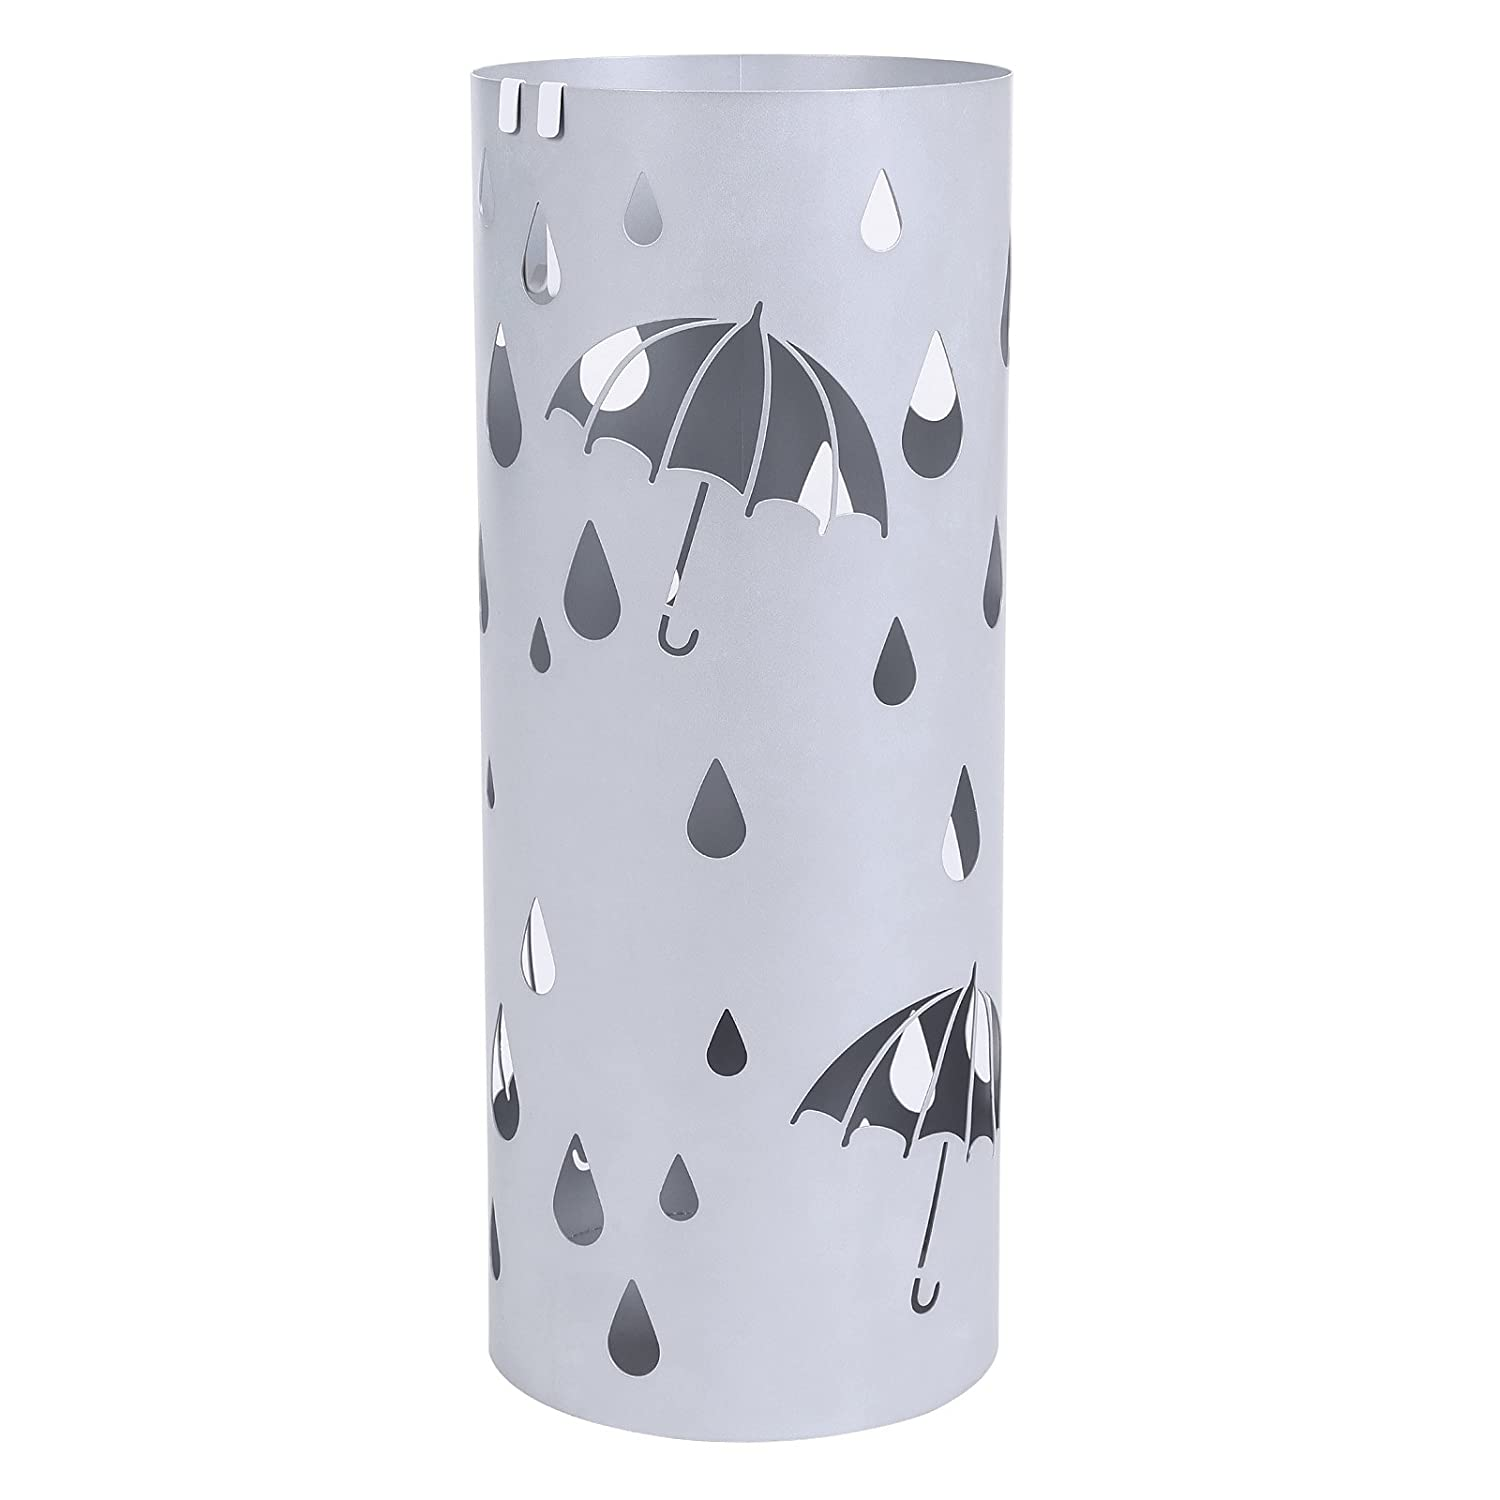 Metal Umbrella Stand Silver Gray Umbrella Holder Home Office Decor with Drip Tray and Hooks